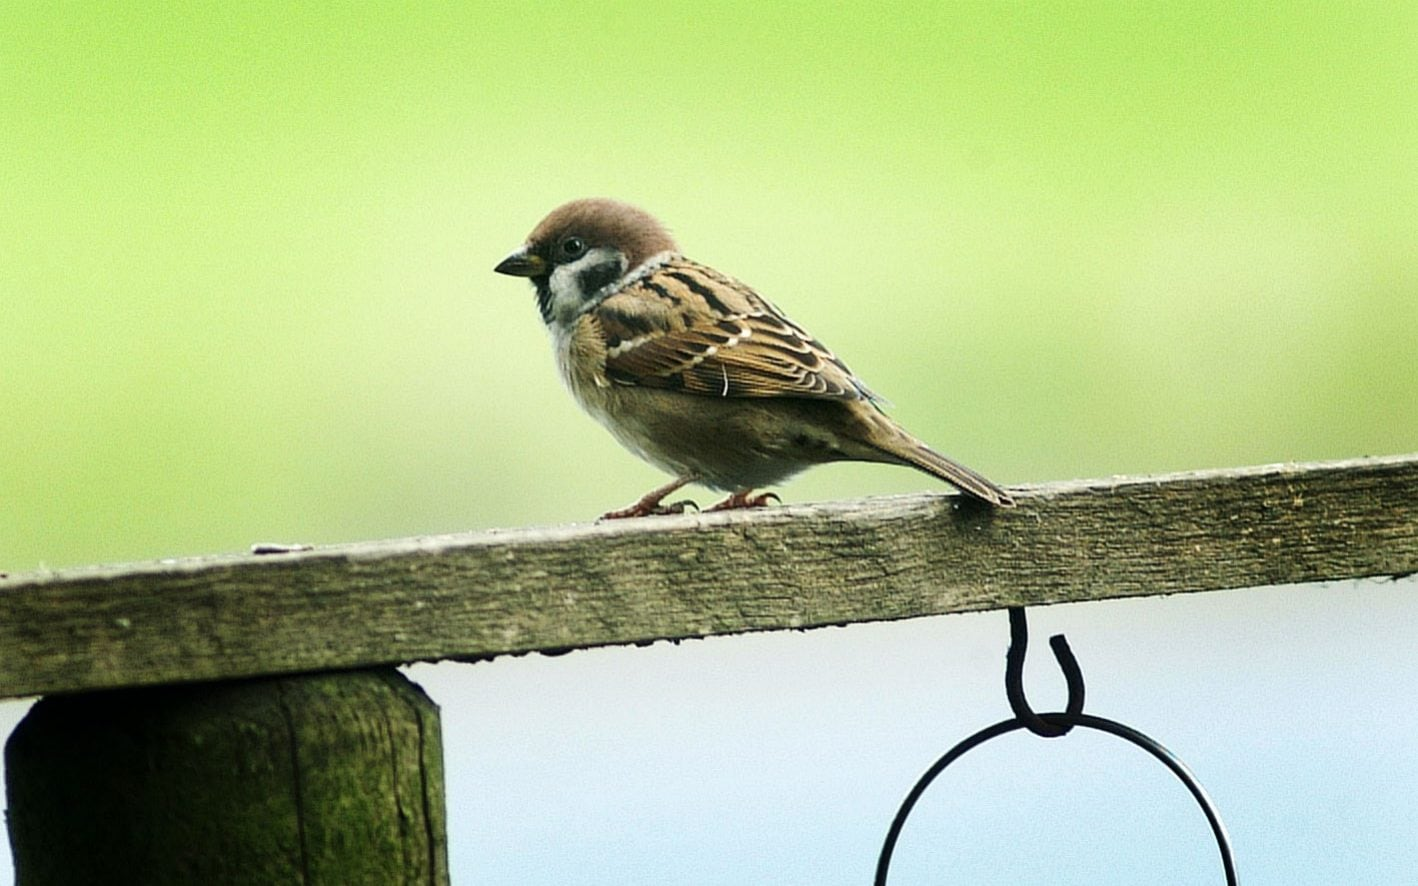 The endangered tree sparrow